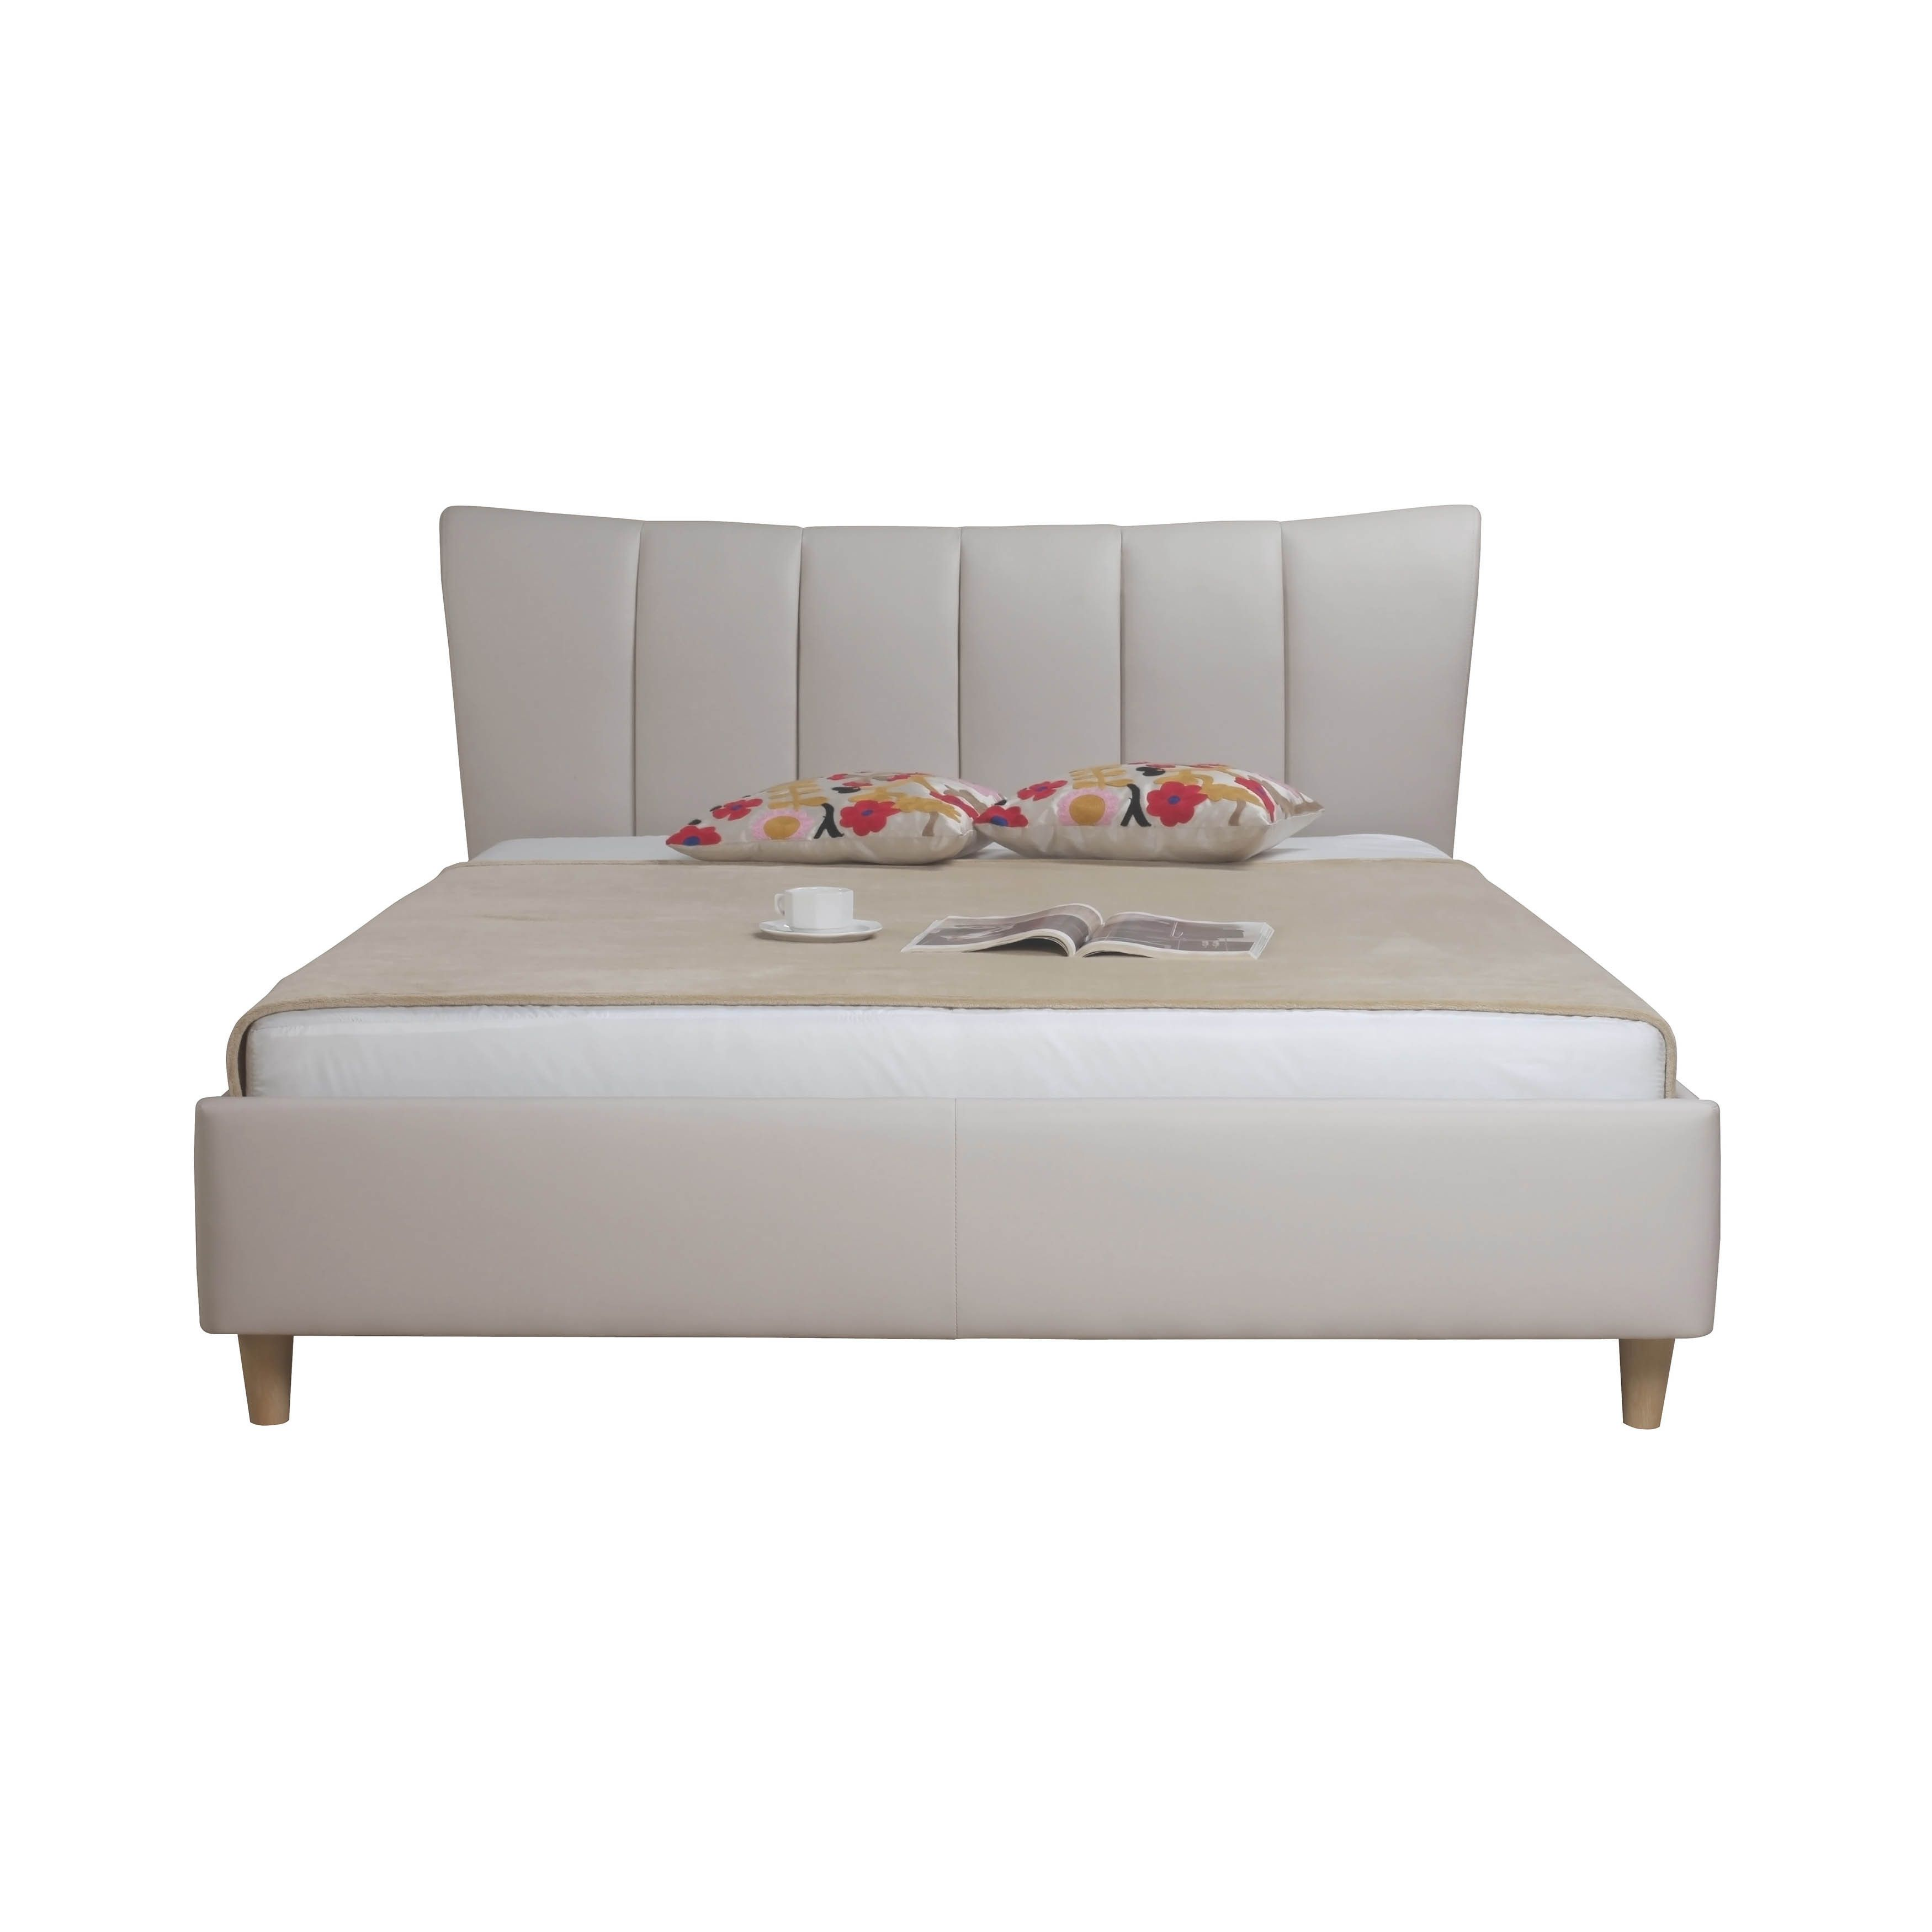 aurelle home kristin queen bed taupe by aurelle home products